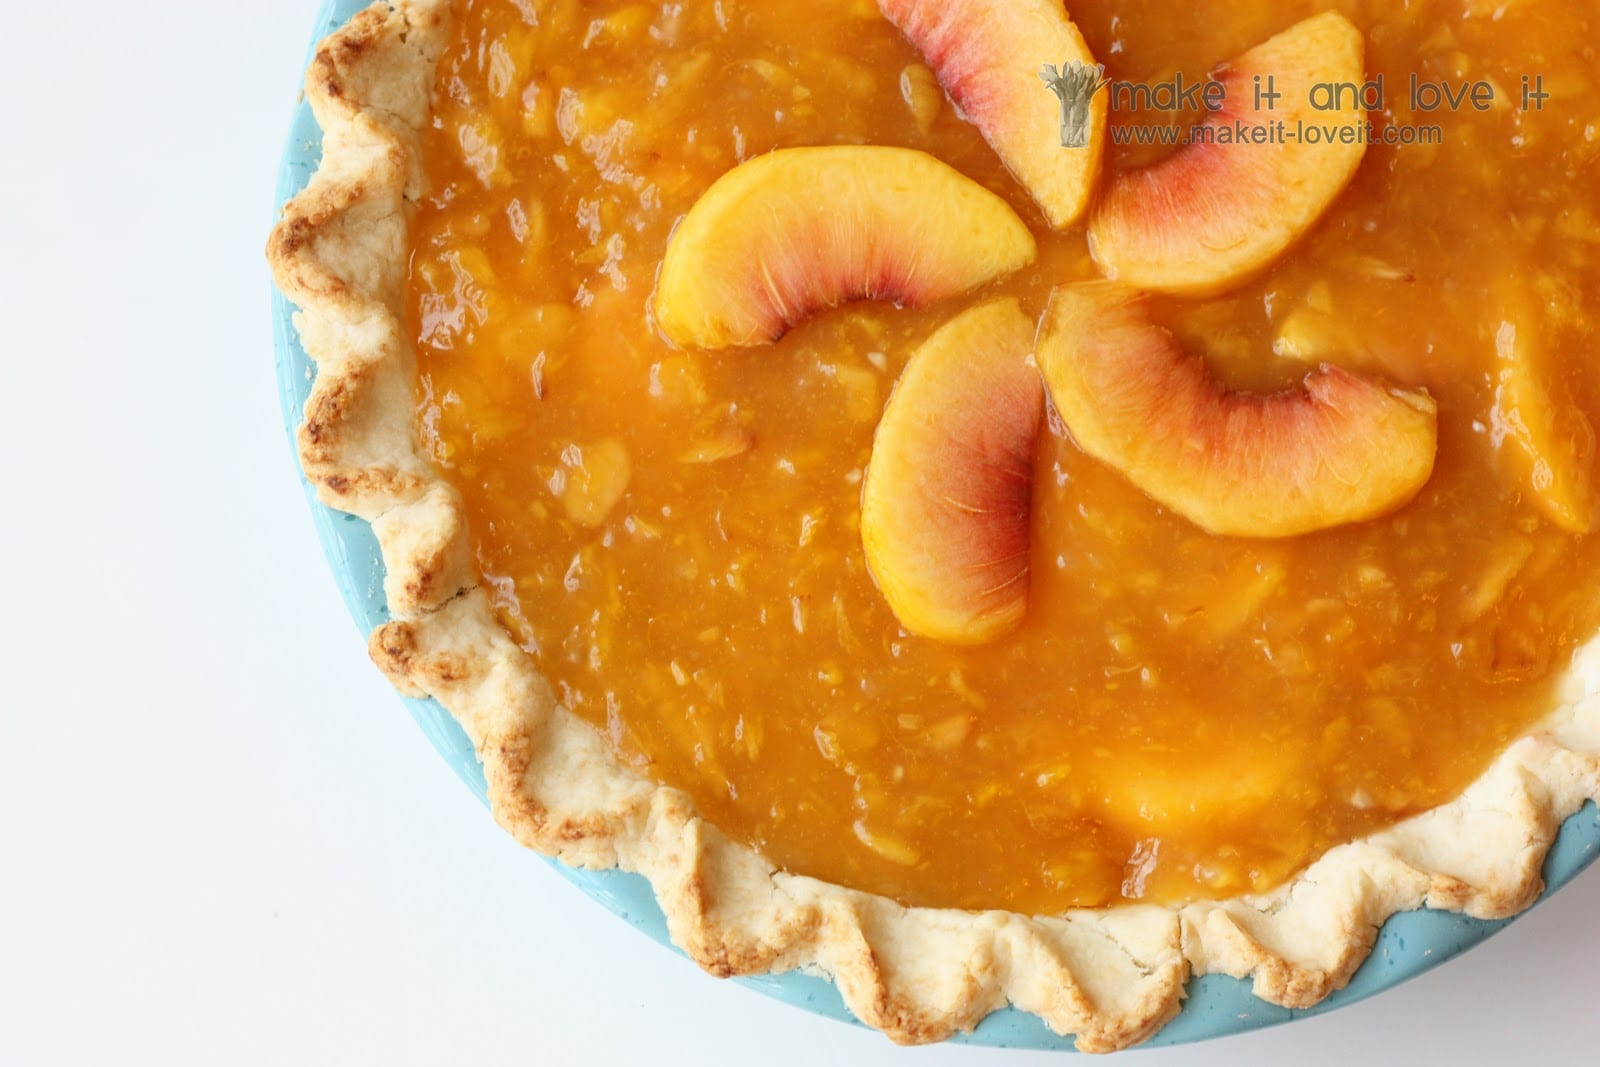 bit of nostalgia and some delicious Peach Pie | Make It and Love It